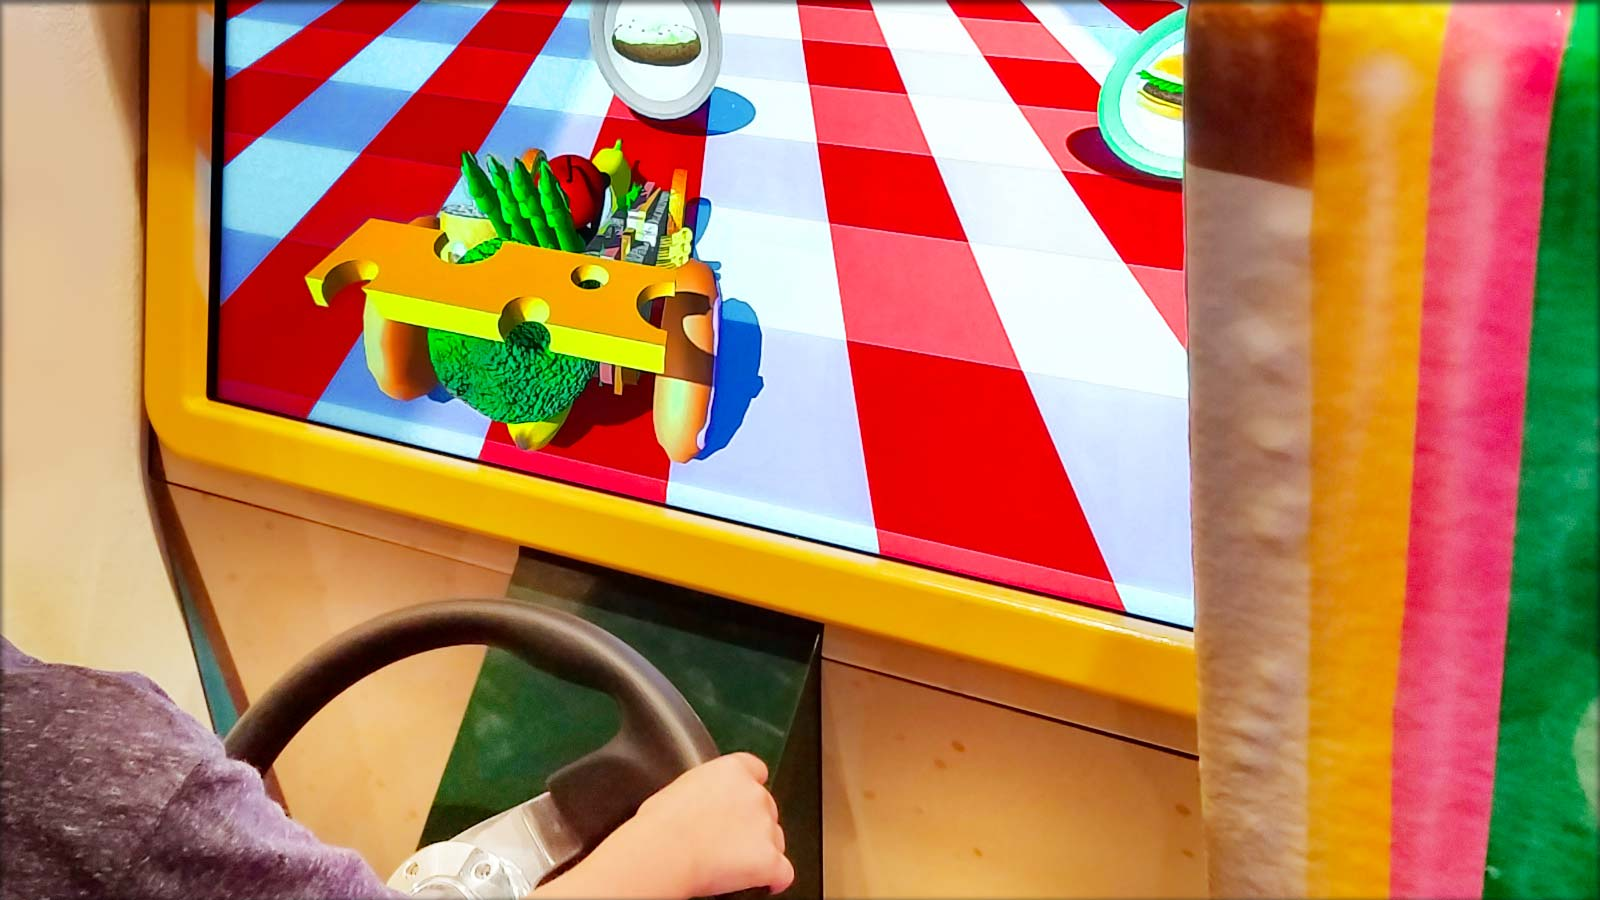 Photo: child using a steering wheel to play driving game in a museum, with a car and obstacles made of food